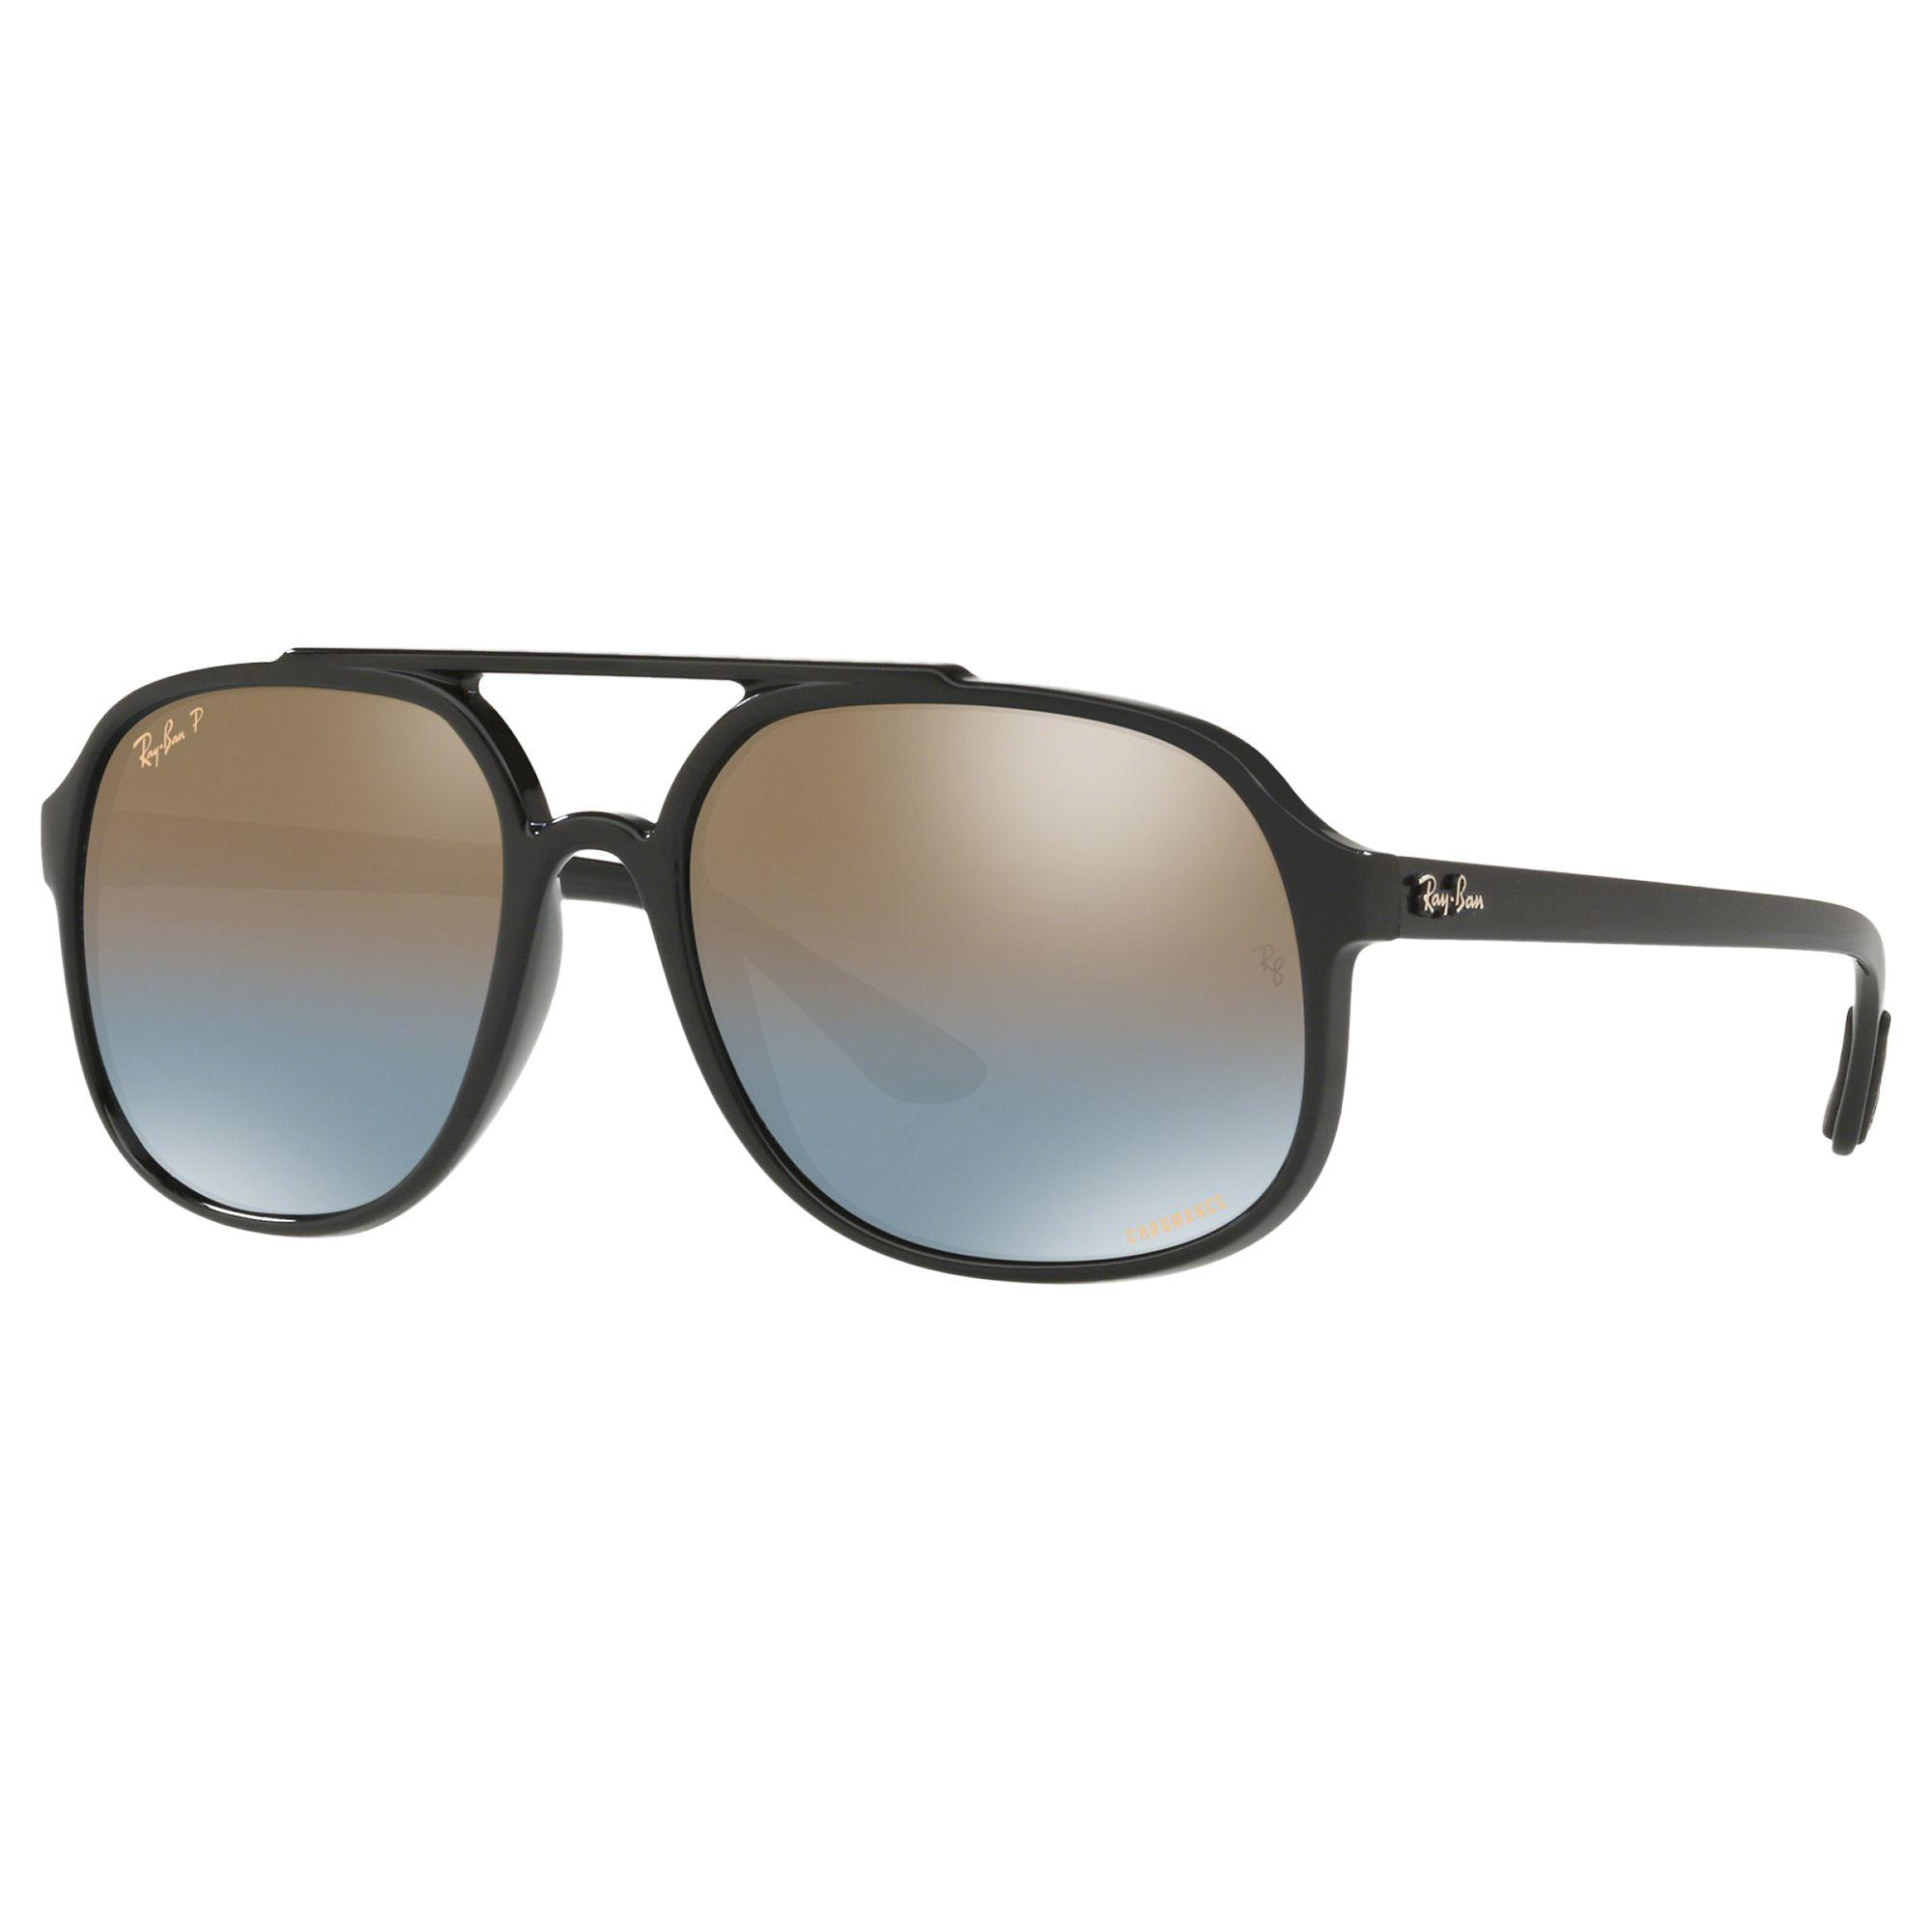 057d153b83 Ray-Ban. Black Rb4312 Men s Square Sunglasses. £146 From John Lewis and  Partners